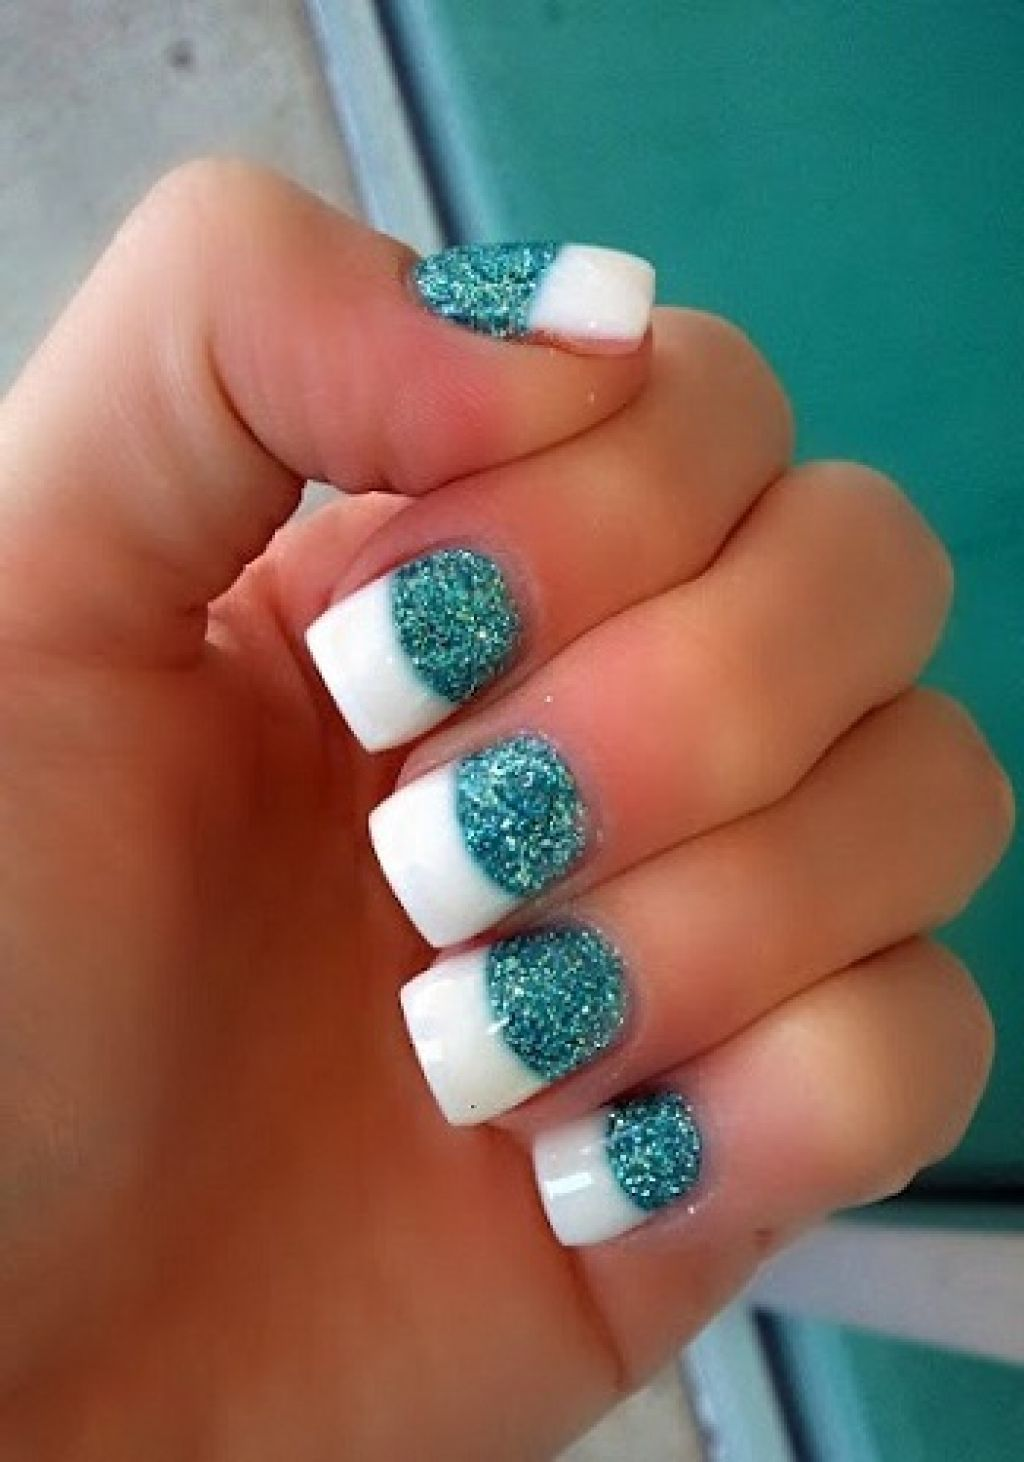 Summer Acrylic Nails Gallery Of Cute Acrylic Nail Designs Tumblr